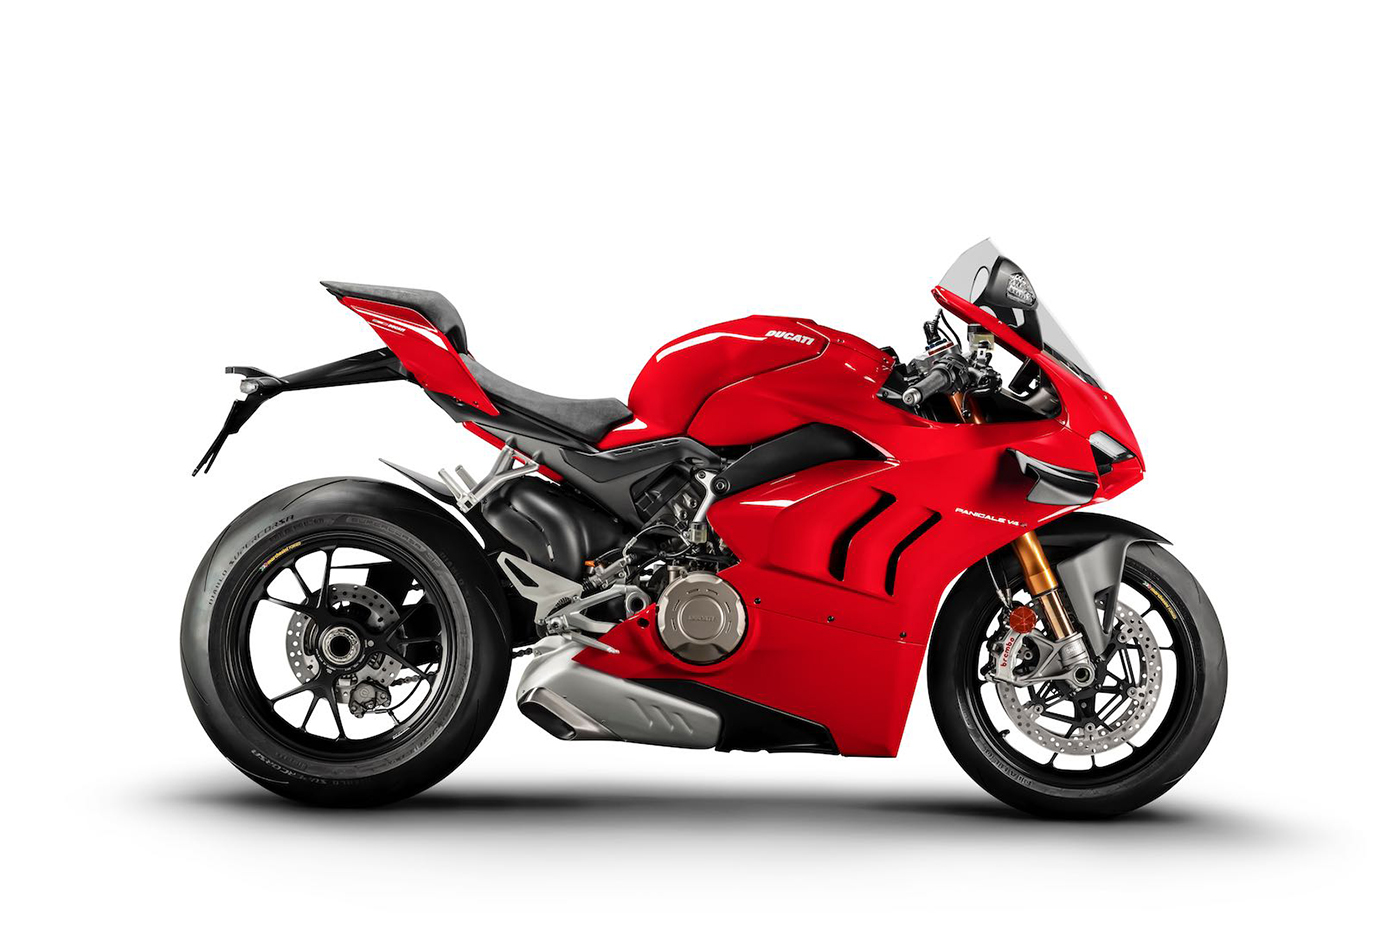 2020-ducati-panigale-v4-first-look-fast-facts-13.jpg